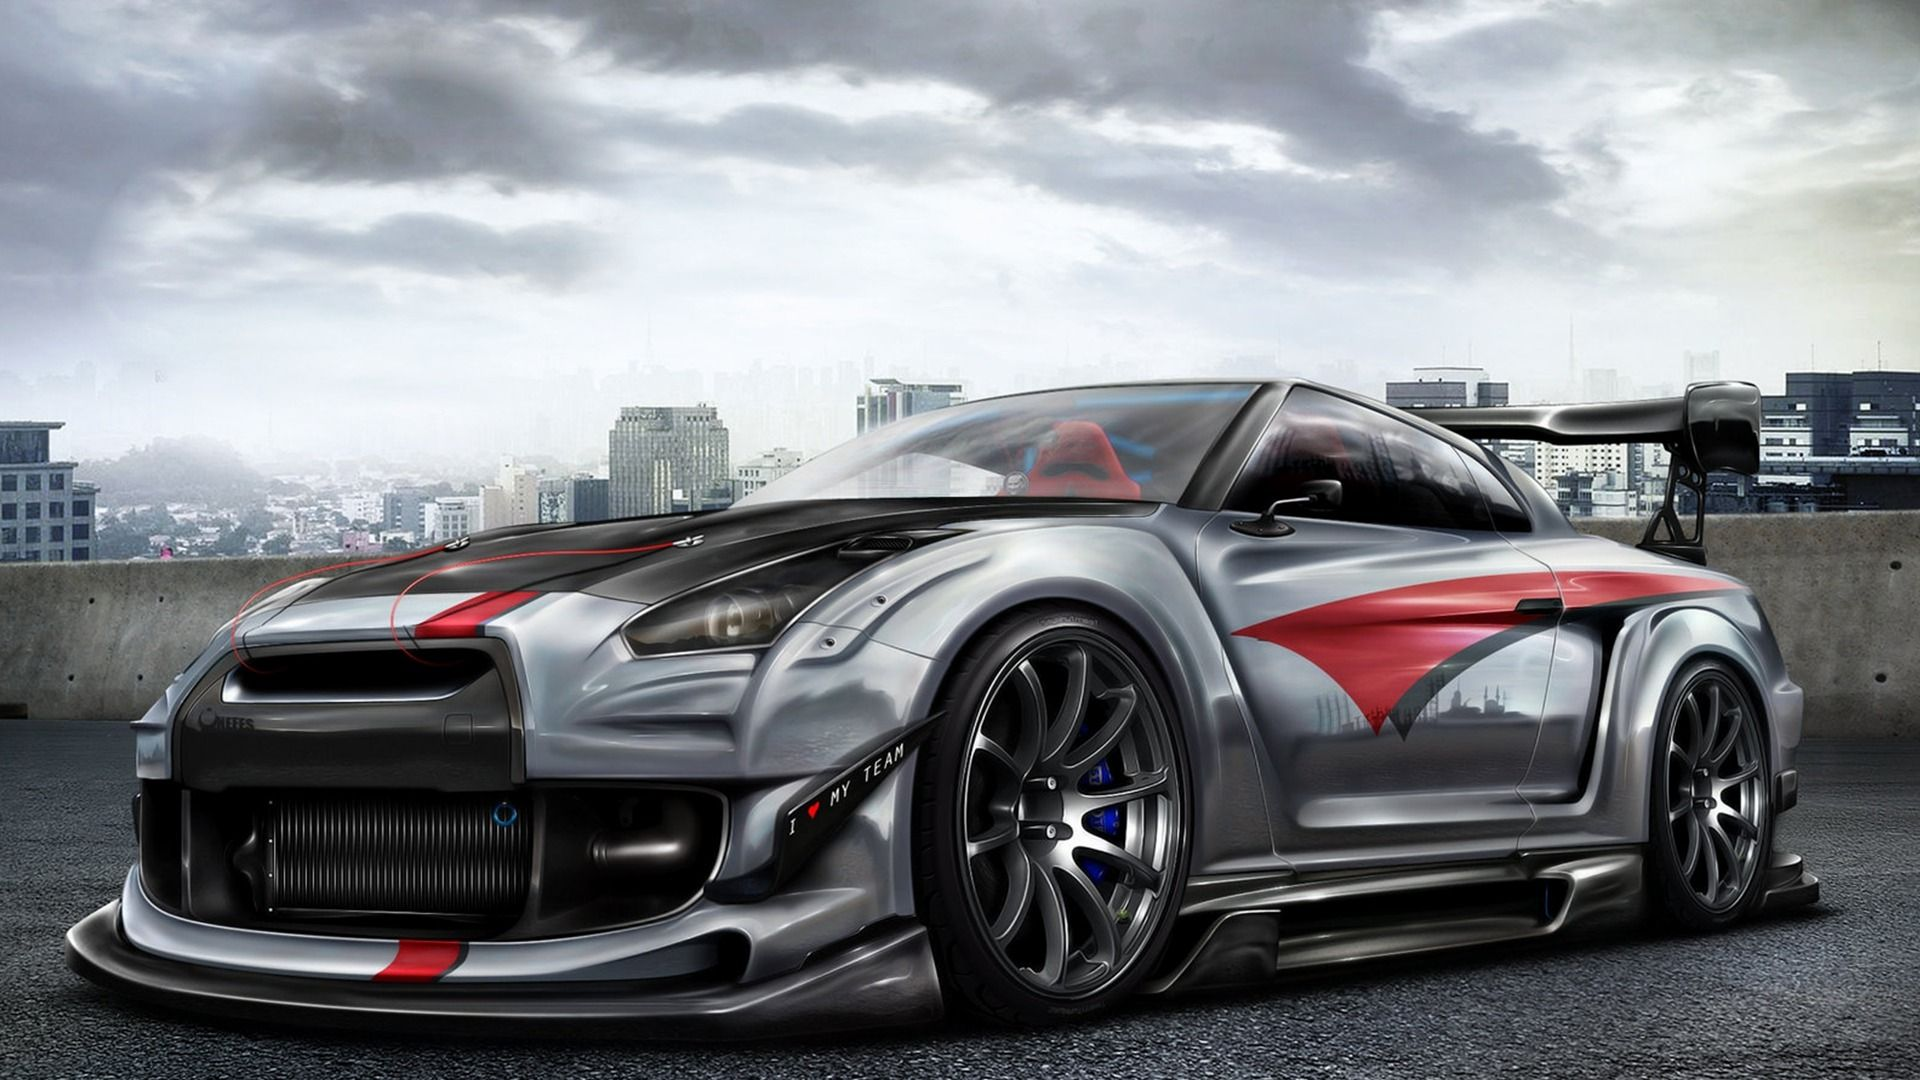 Nissan skyline r35 wallpaper   SF Wallpaper 1920x1080